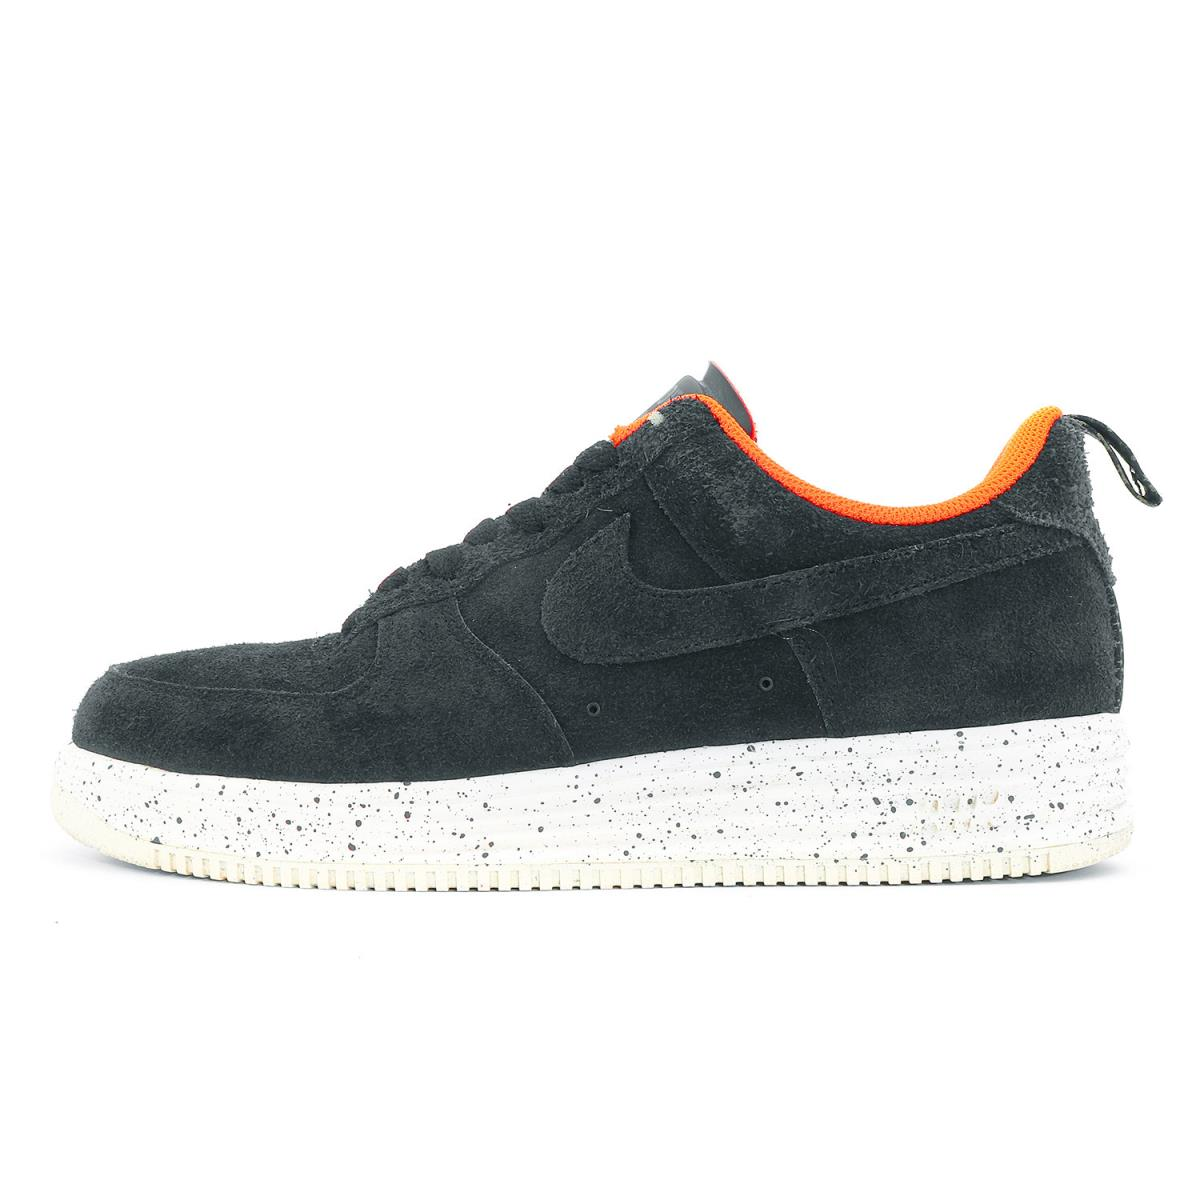 4056e57677d BEEGLE by Boo-Bee  NIKE (Nike) X UNDEFEATED LUNAR FORCE 1 UNDFTD SP ...